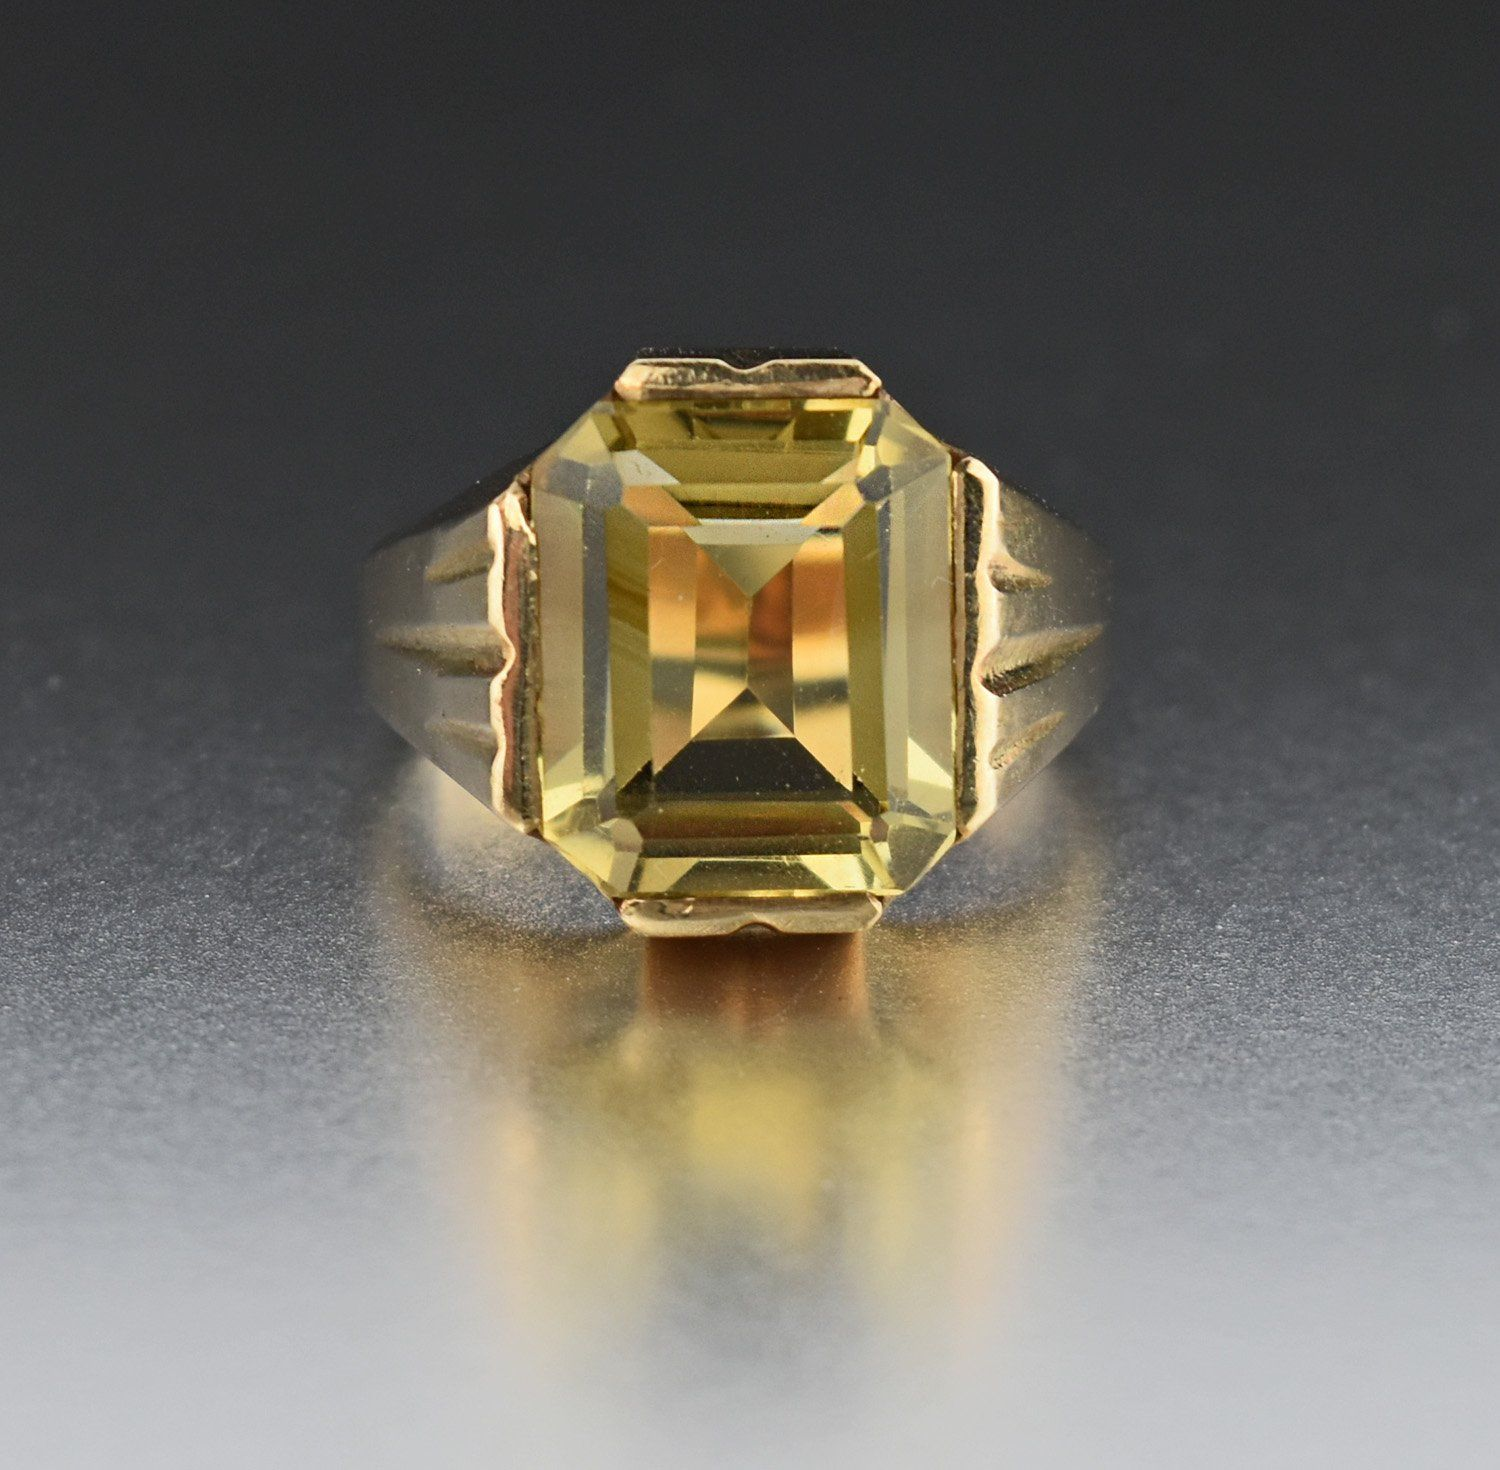 Vintage Art Deco 10k Gold Lemon Citrine Ring 1920s Art Deco Jewelry Vintage Art Deco Deco Jewelry